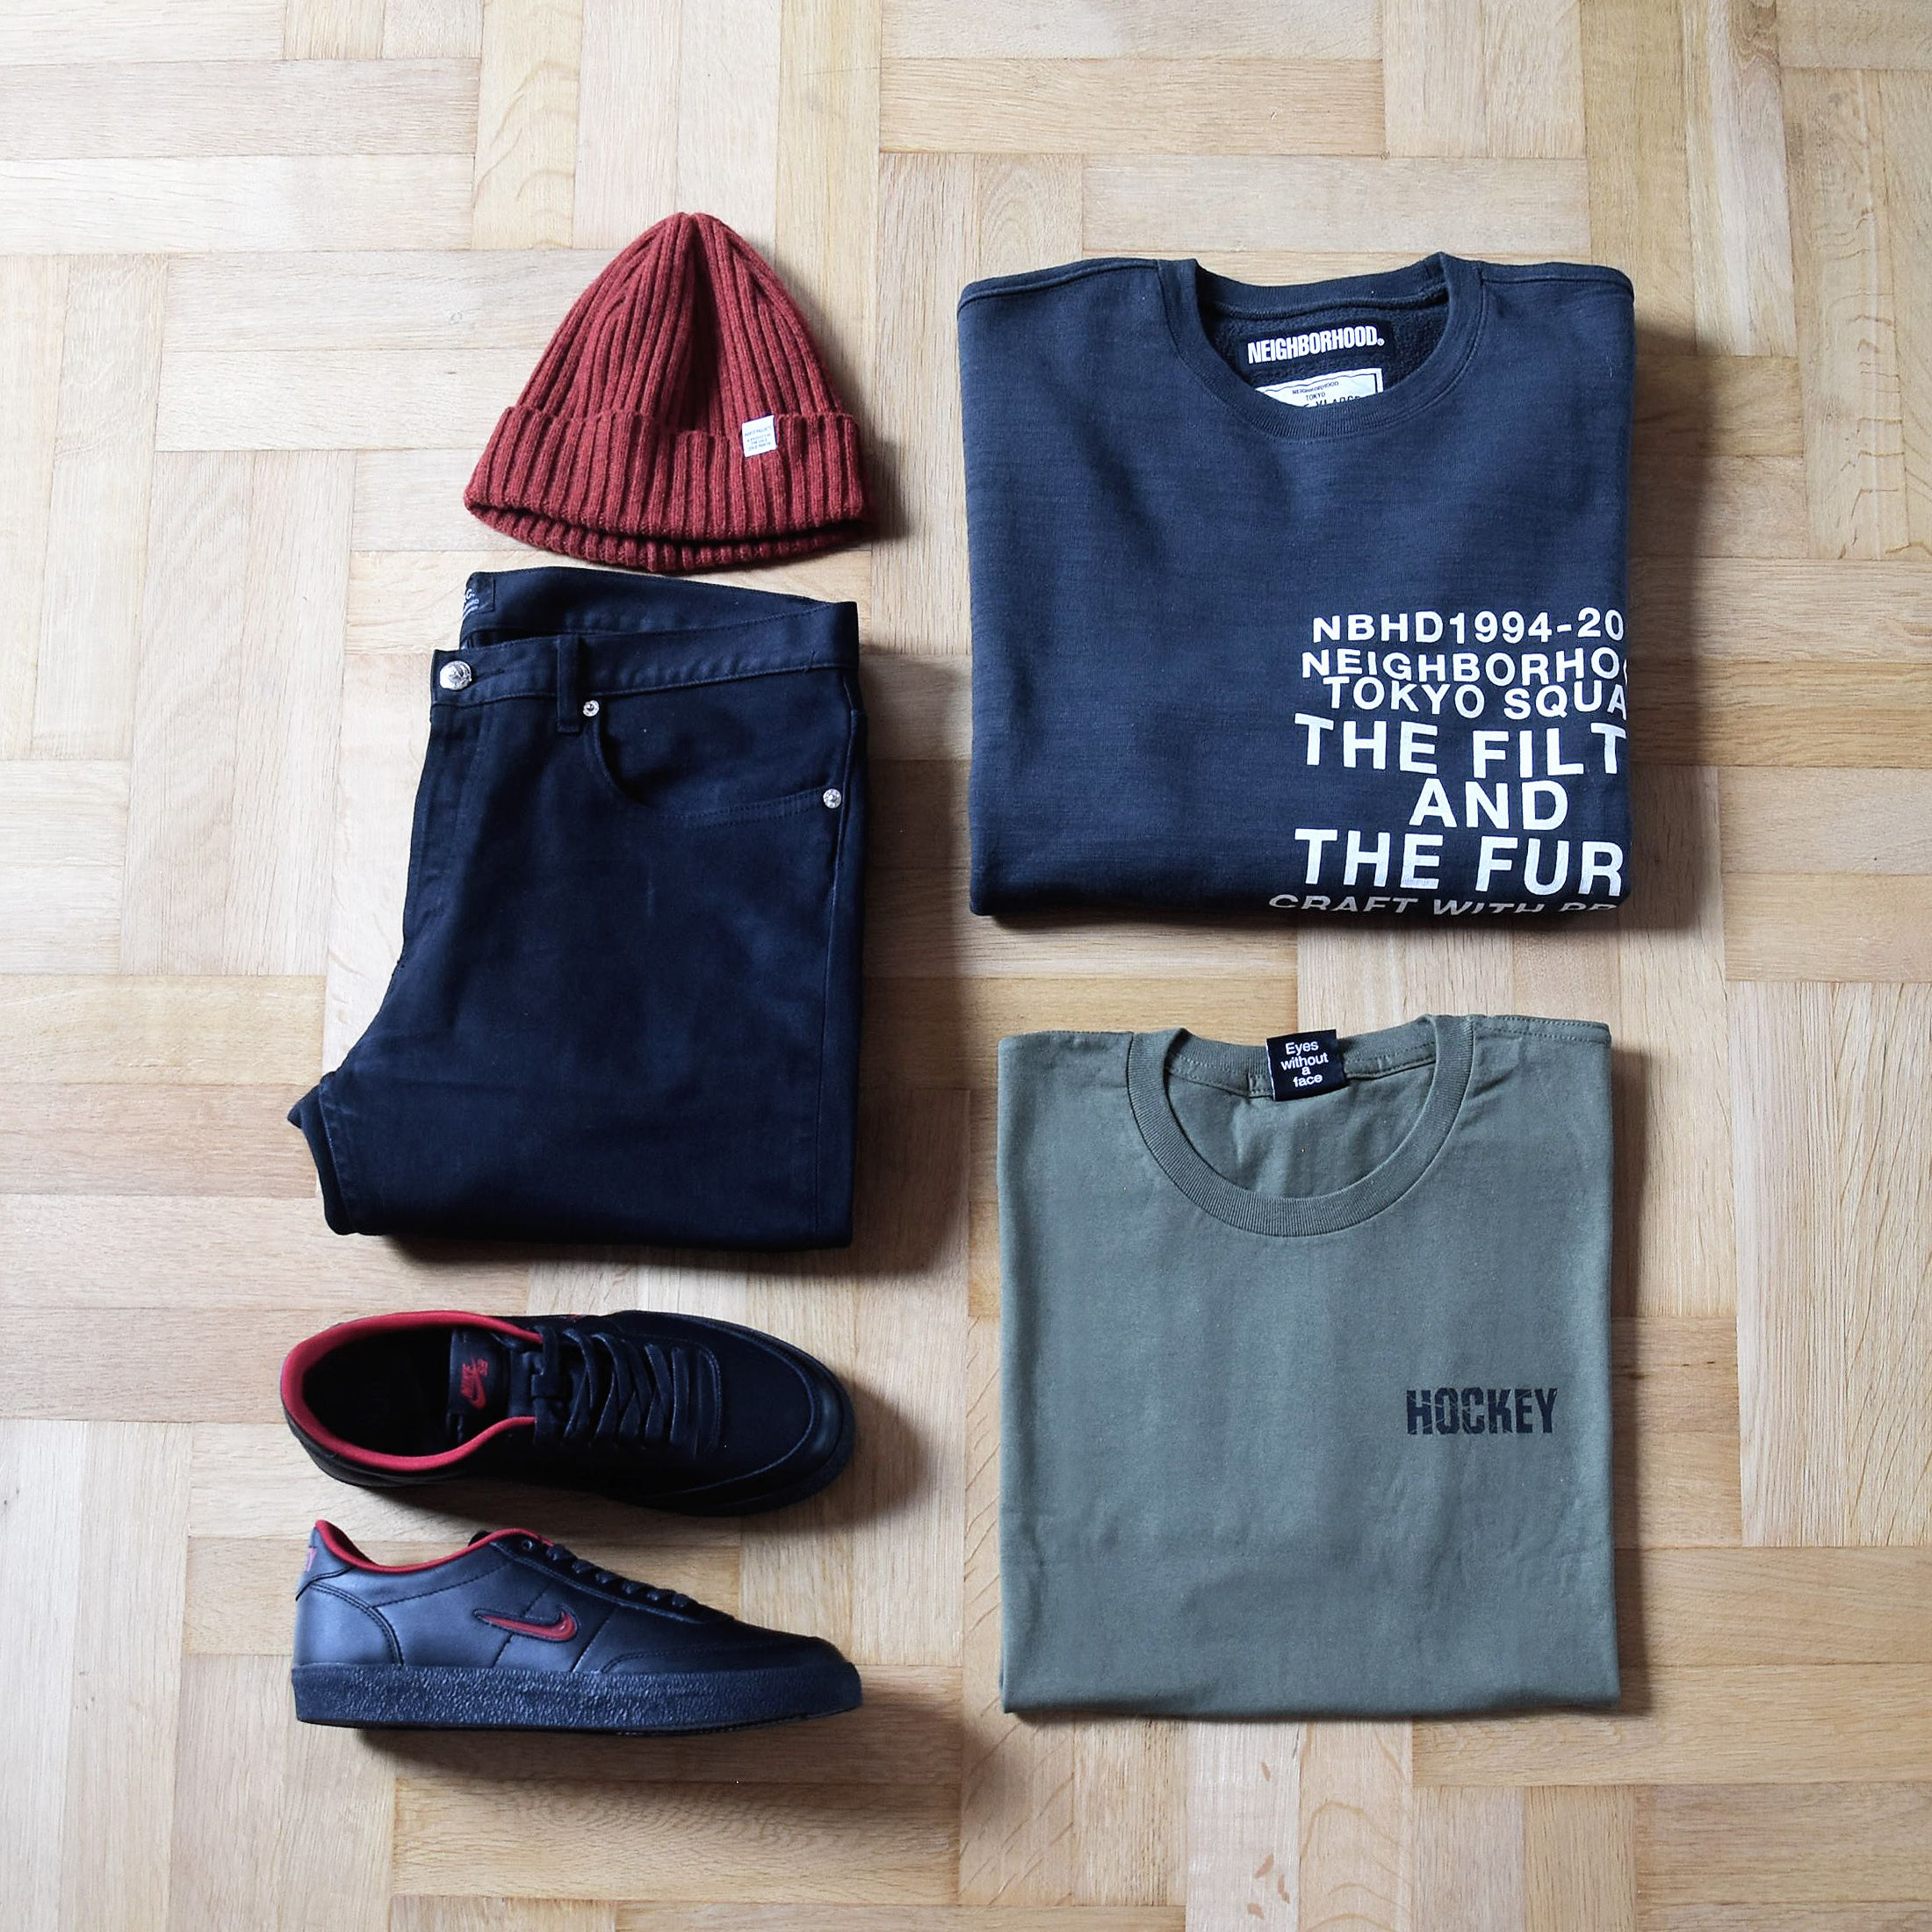 Outfitgrid Norse Projects Beanie Neighborhood Crewneck Hockey Skateboards Tee Apc Denim Nike X Hockey Shoes Skateboard Tee Hockey Shoes Fashion